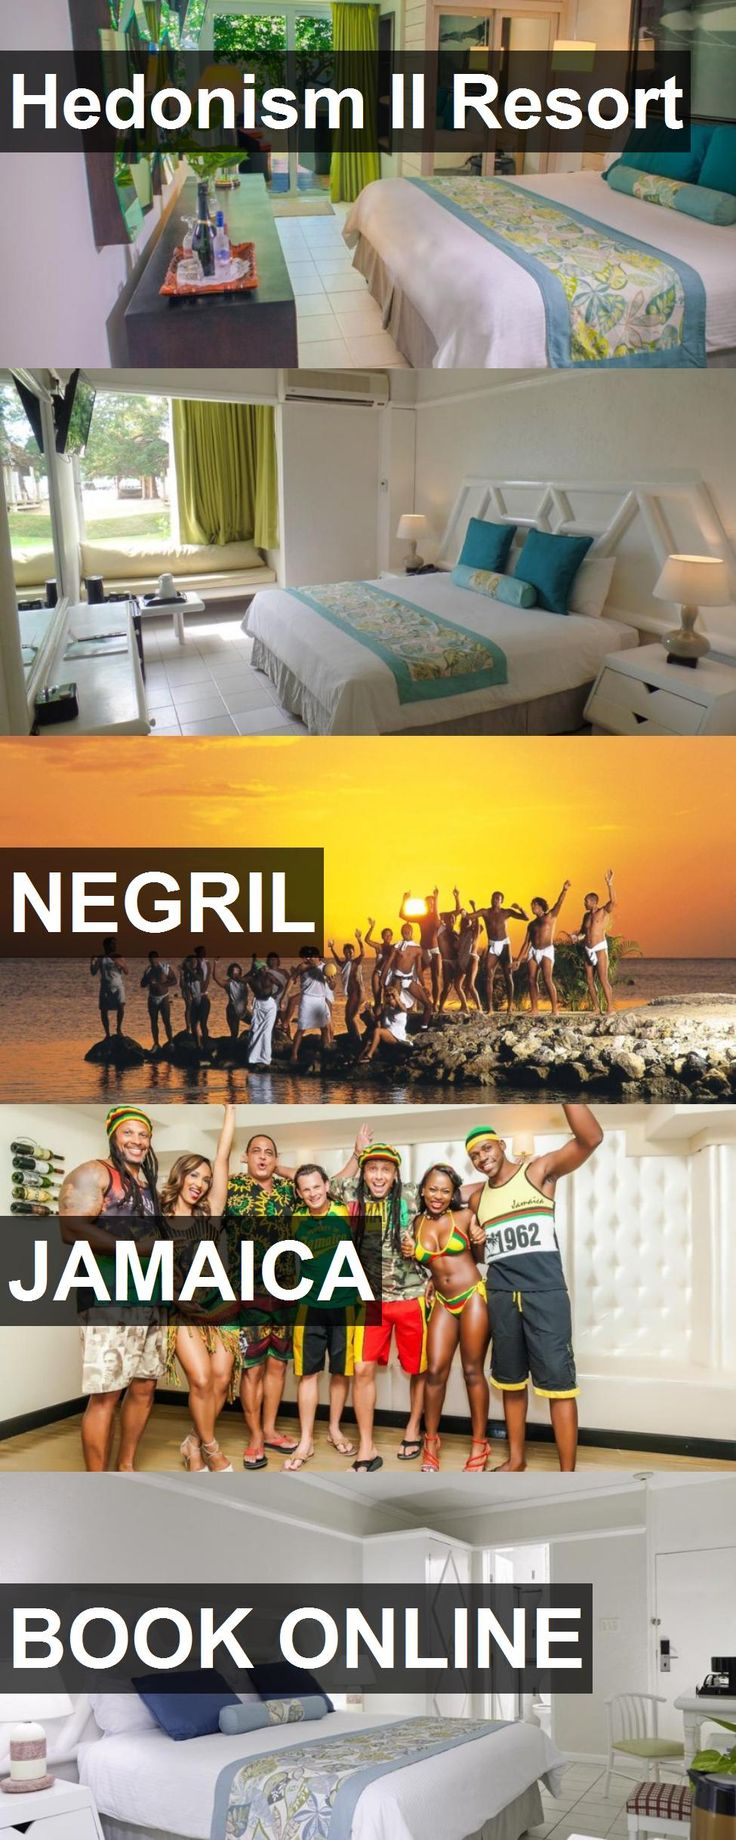 Hotel Hedonism II Resort in Negril, Jamaica. For more information, photos, reviews and best prices please follow the link. #Jamaica #Negril #travel #vacation #hotel